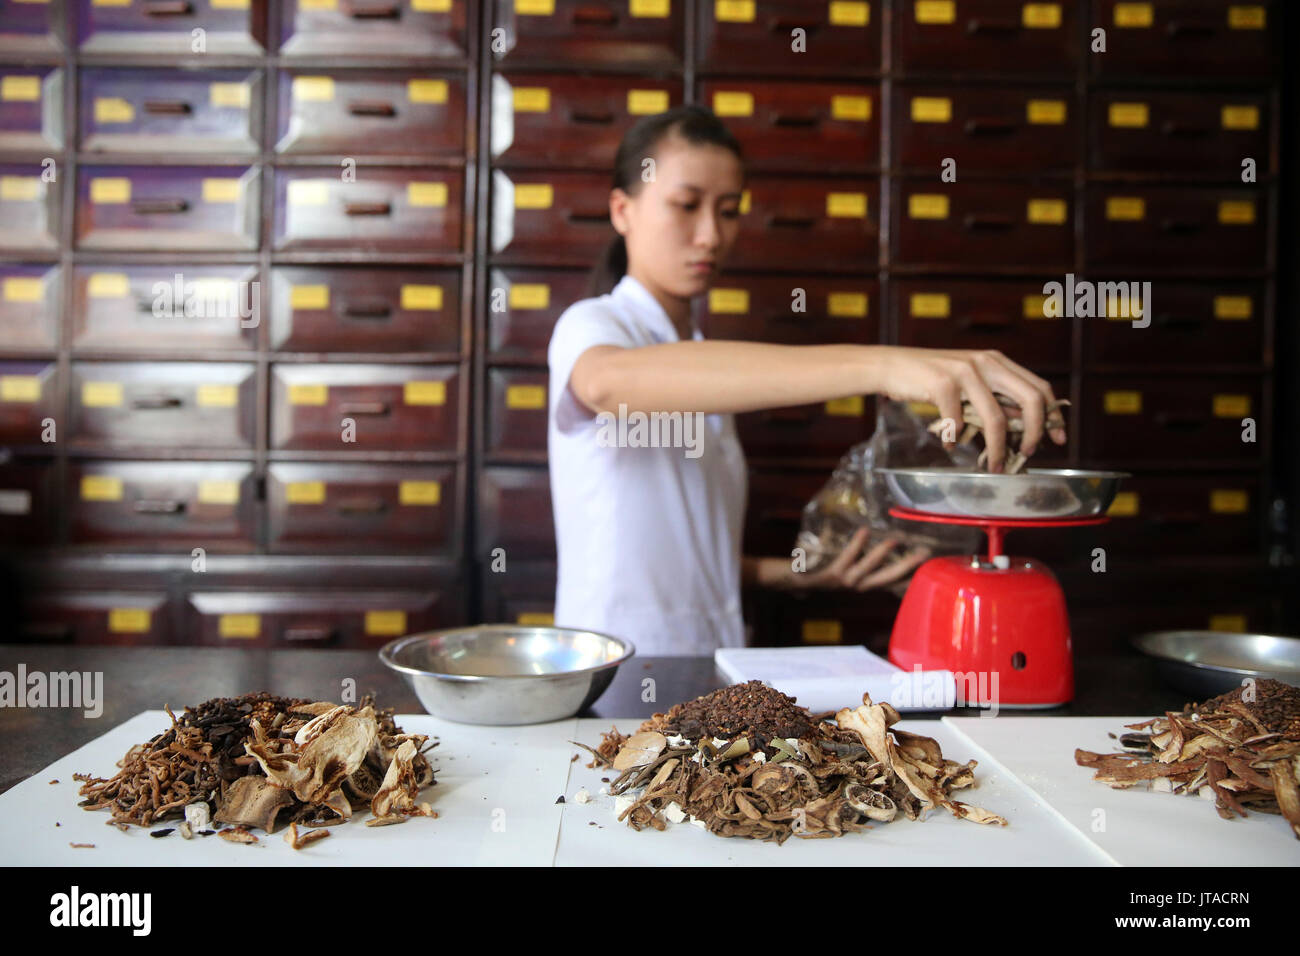 Herbal medicine therapy, traditional Chinese medicine pharmacy, Ho Chi Minh City, Vietnam, Indochina, Southeast Asia, Asia - Stock Image